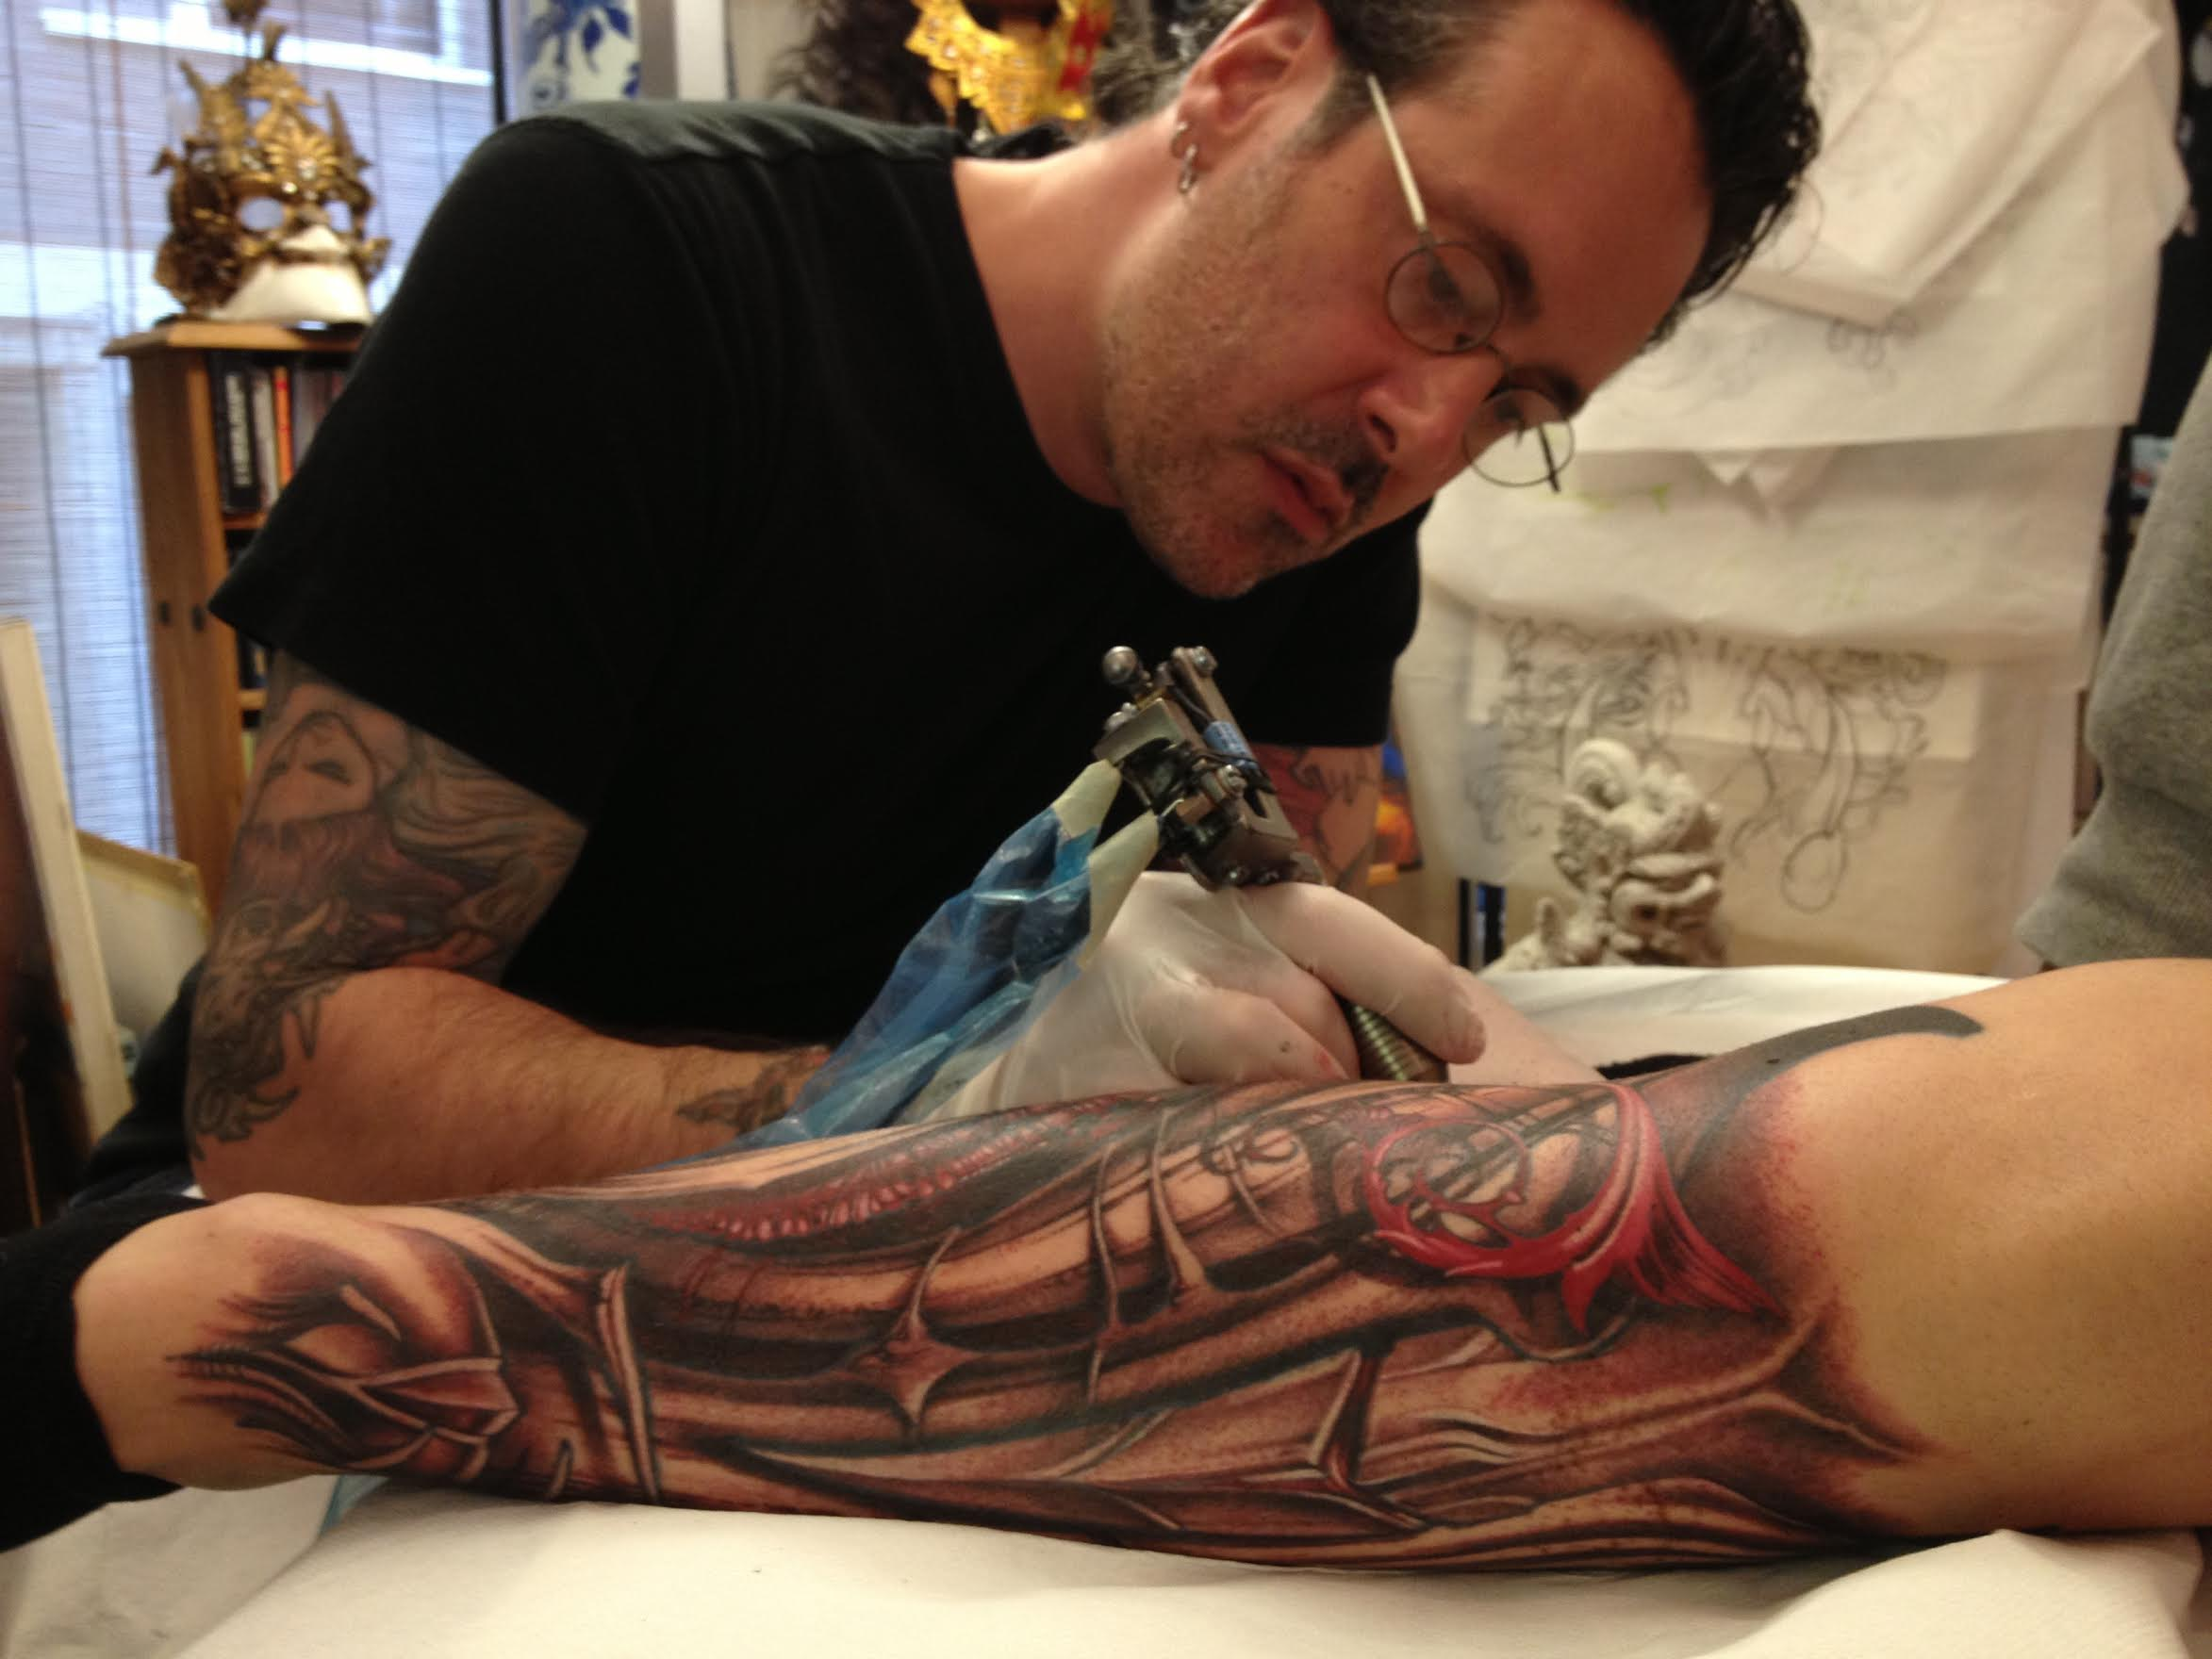 Rob Koss, who founded the XXXtattoo studio in Lucerne